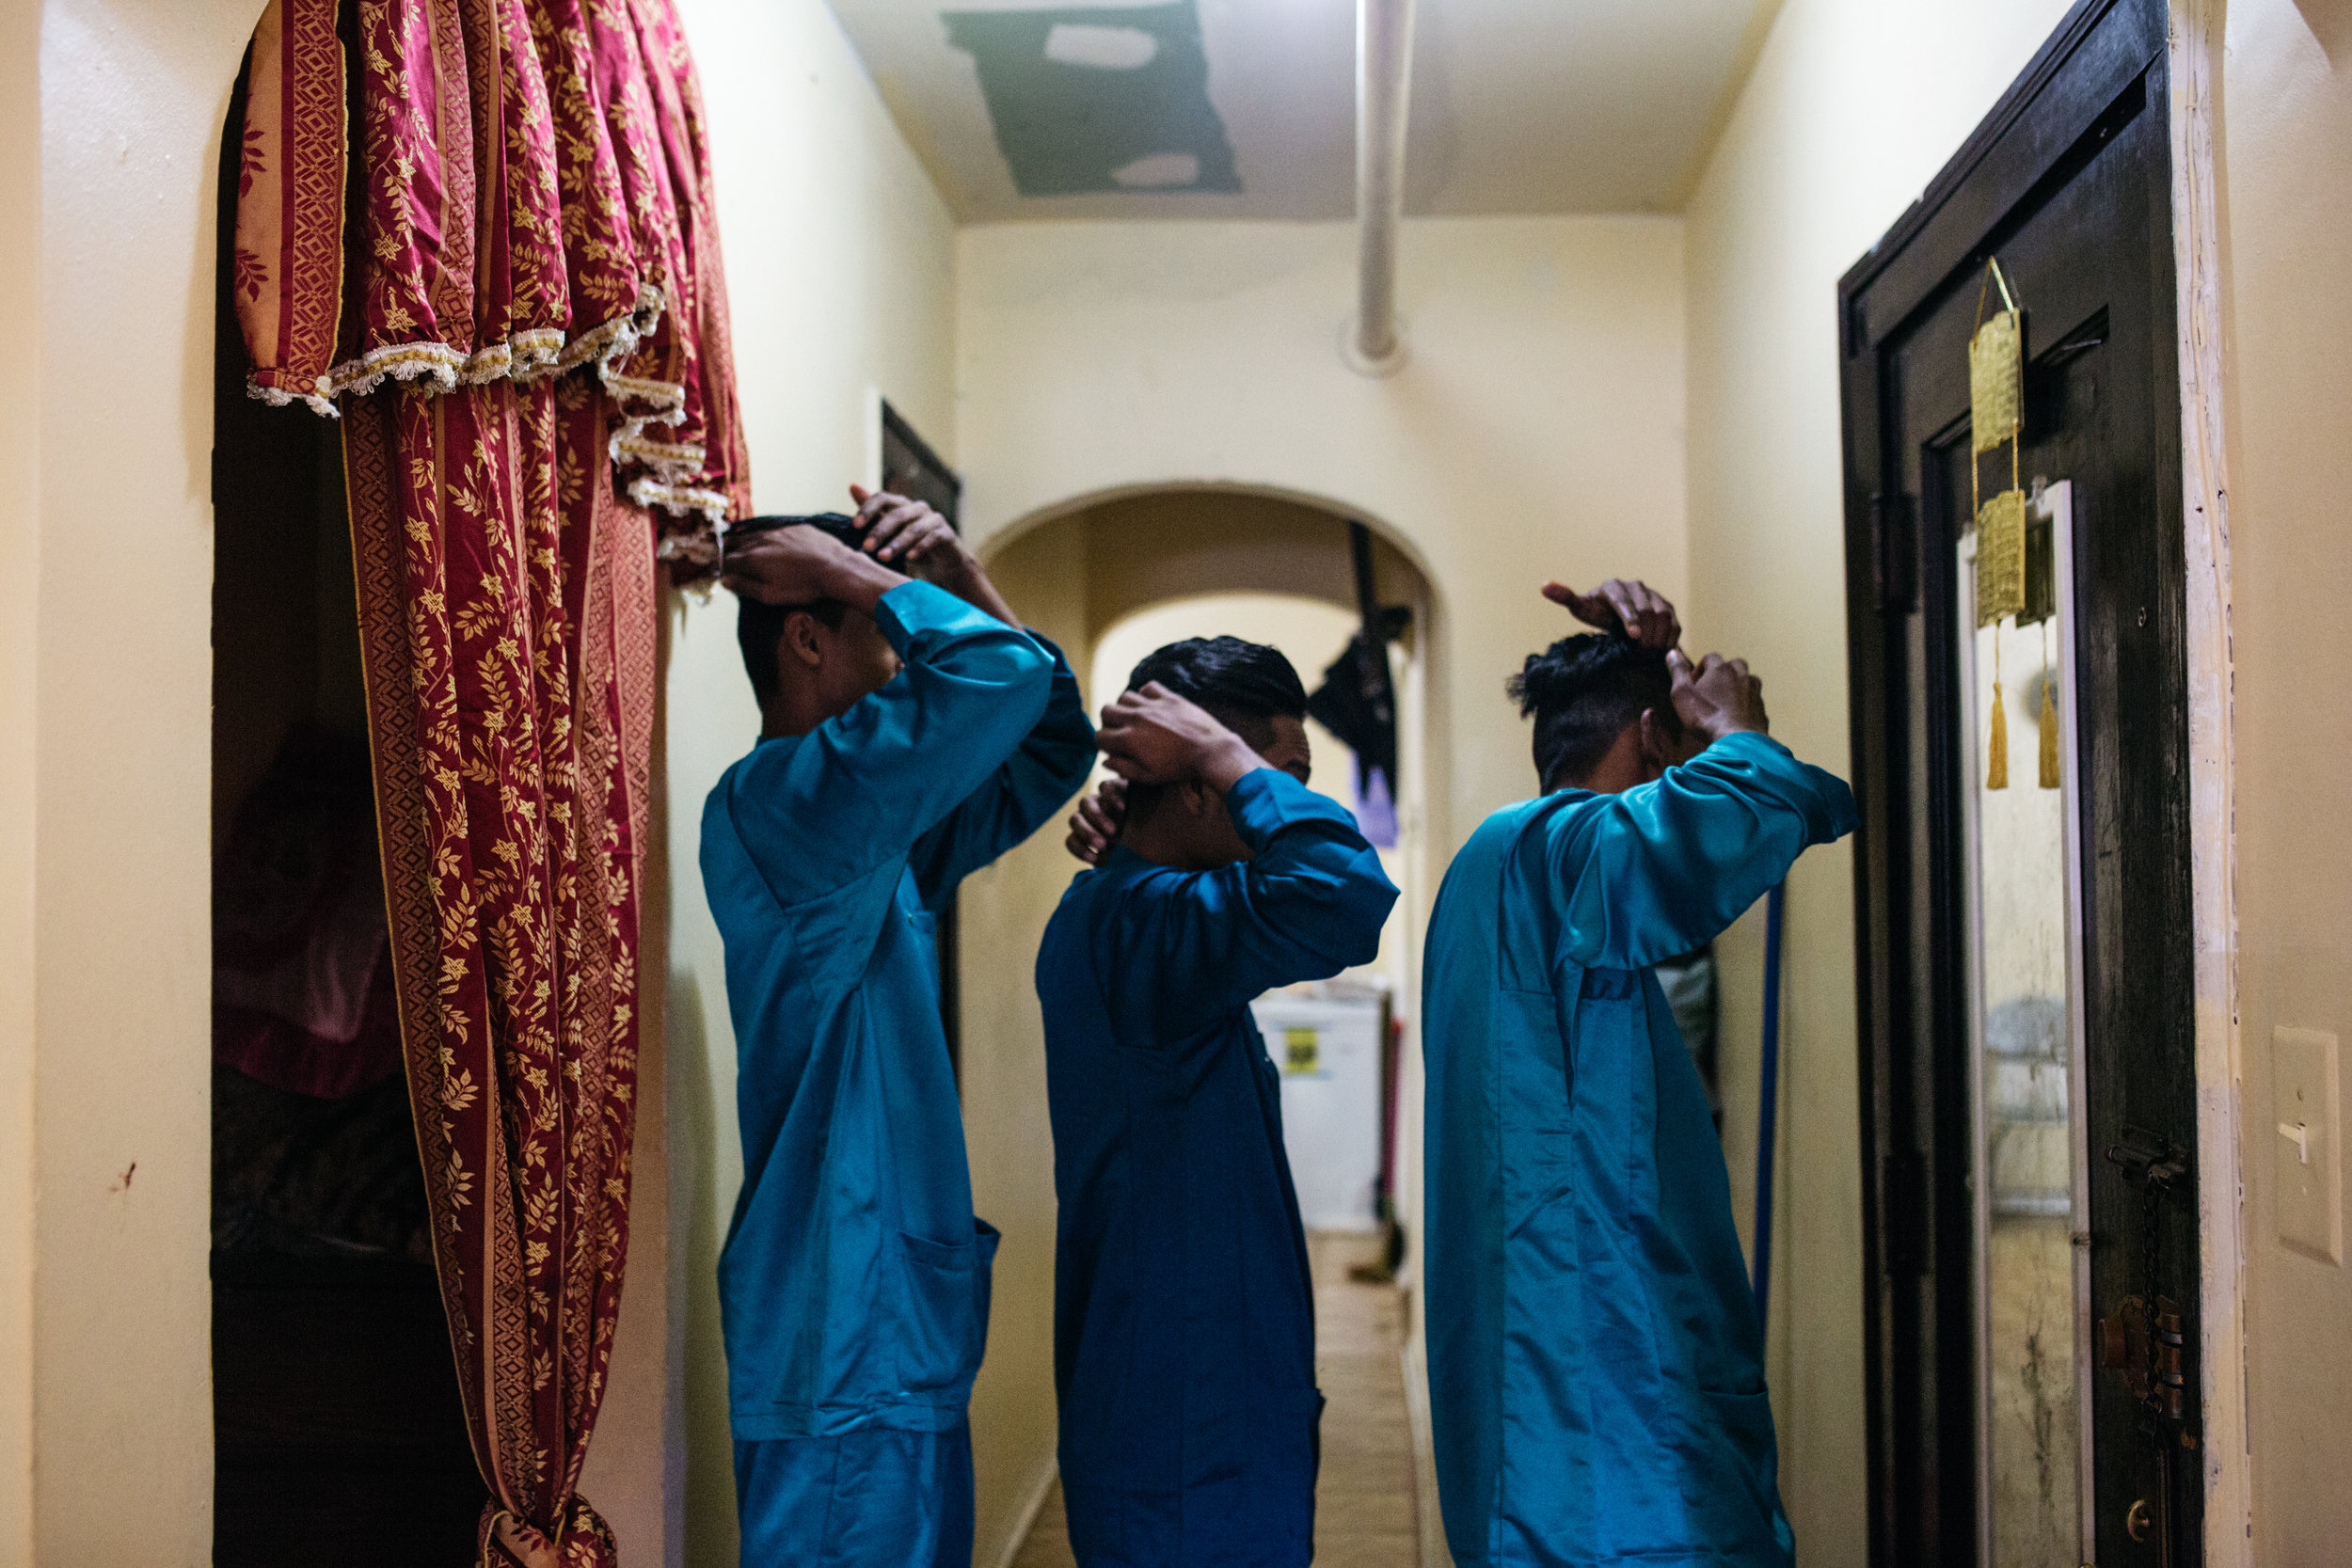 Young men preparing for Eid al-Adha celebrations.     Image